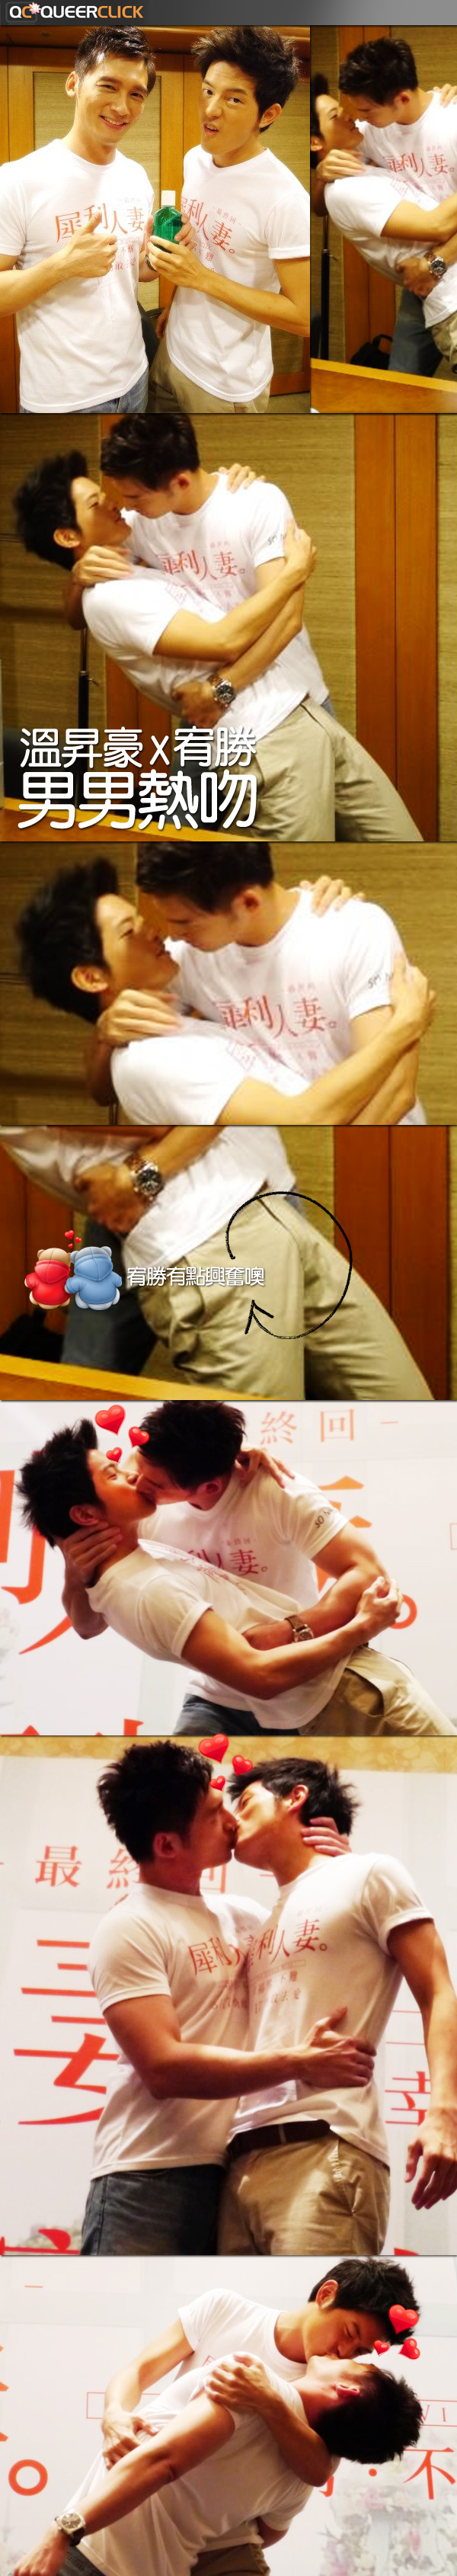 Wen Sheng Hao and You Sheng Hot Kiss! 溫昇豪、宥勝男男熱吻